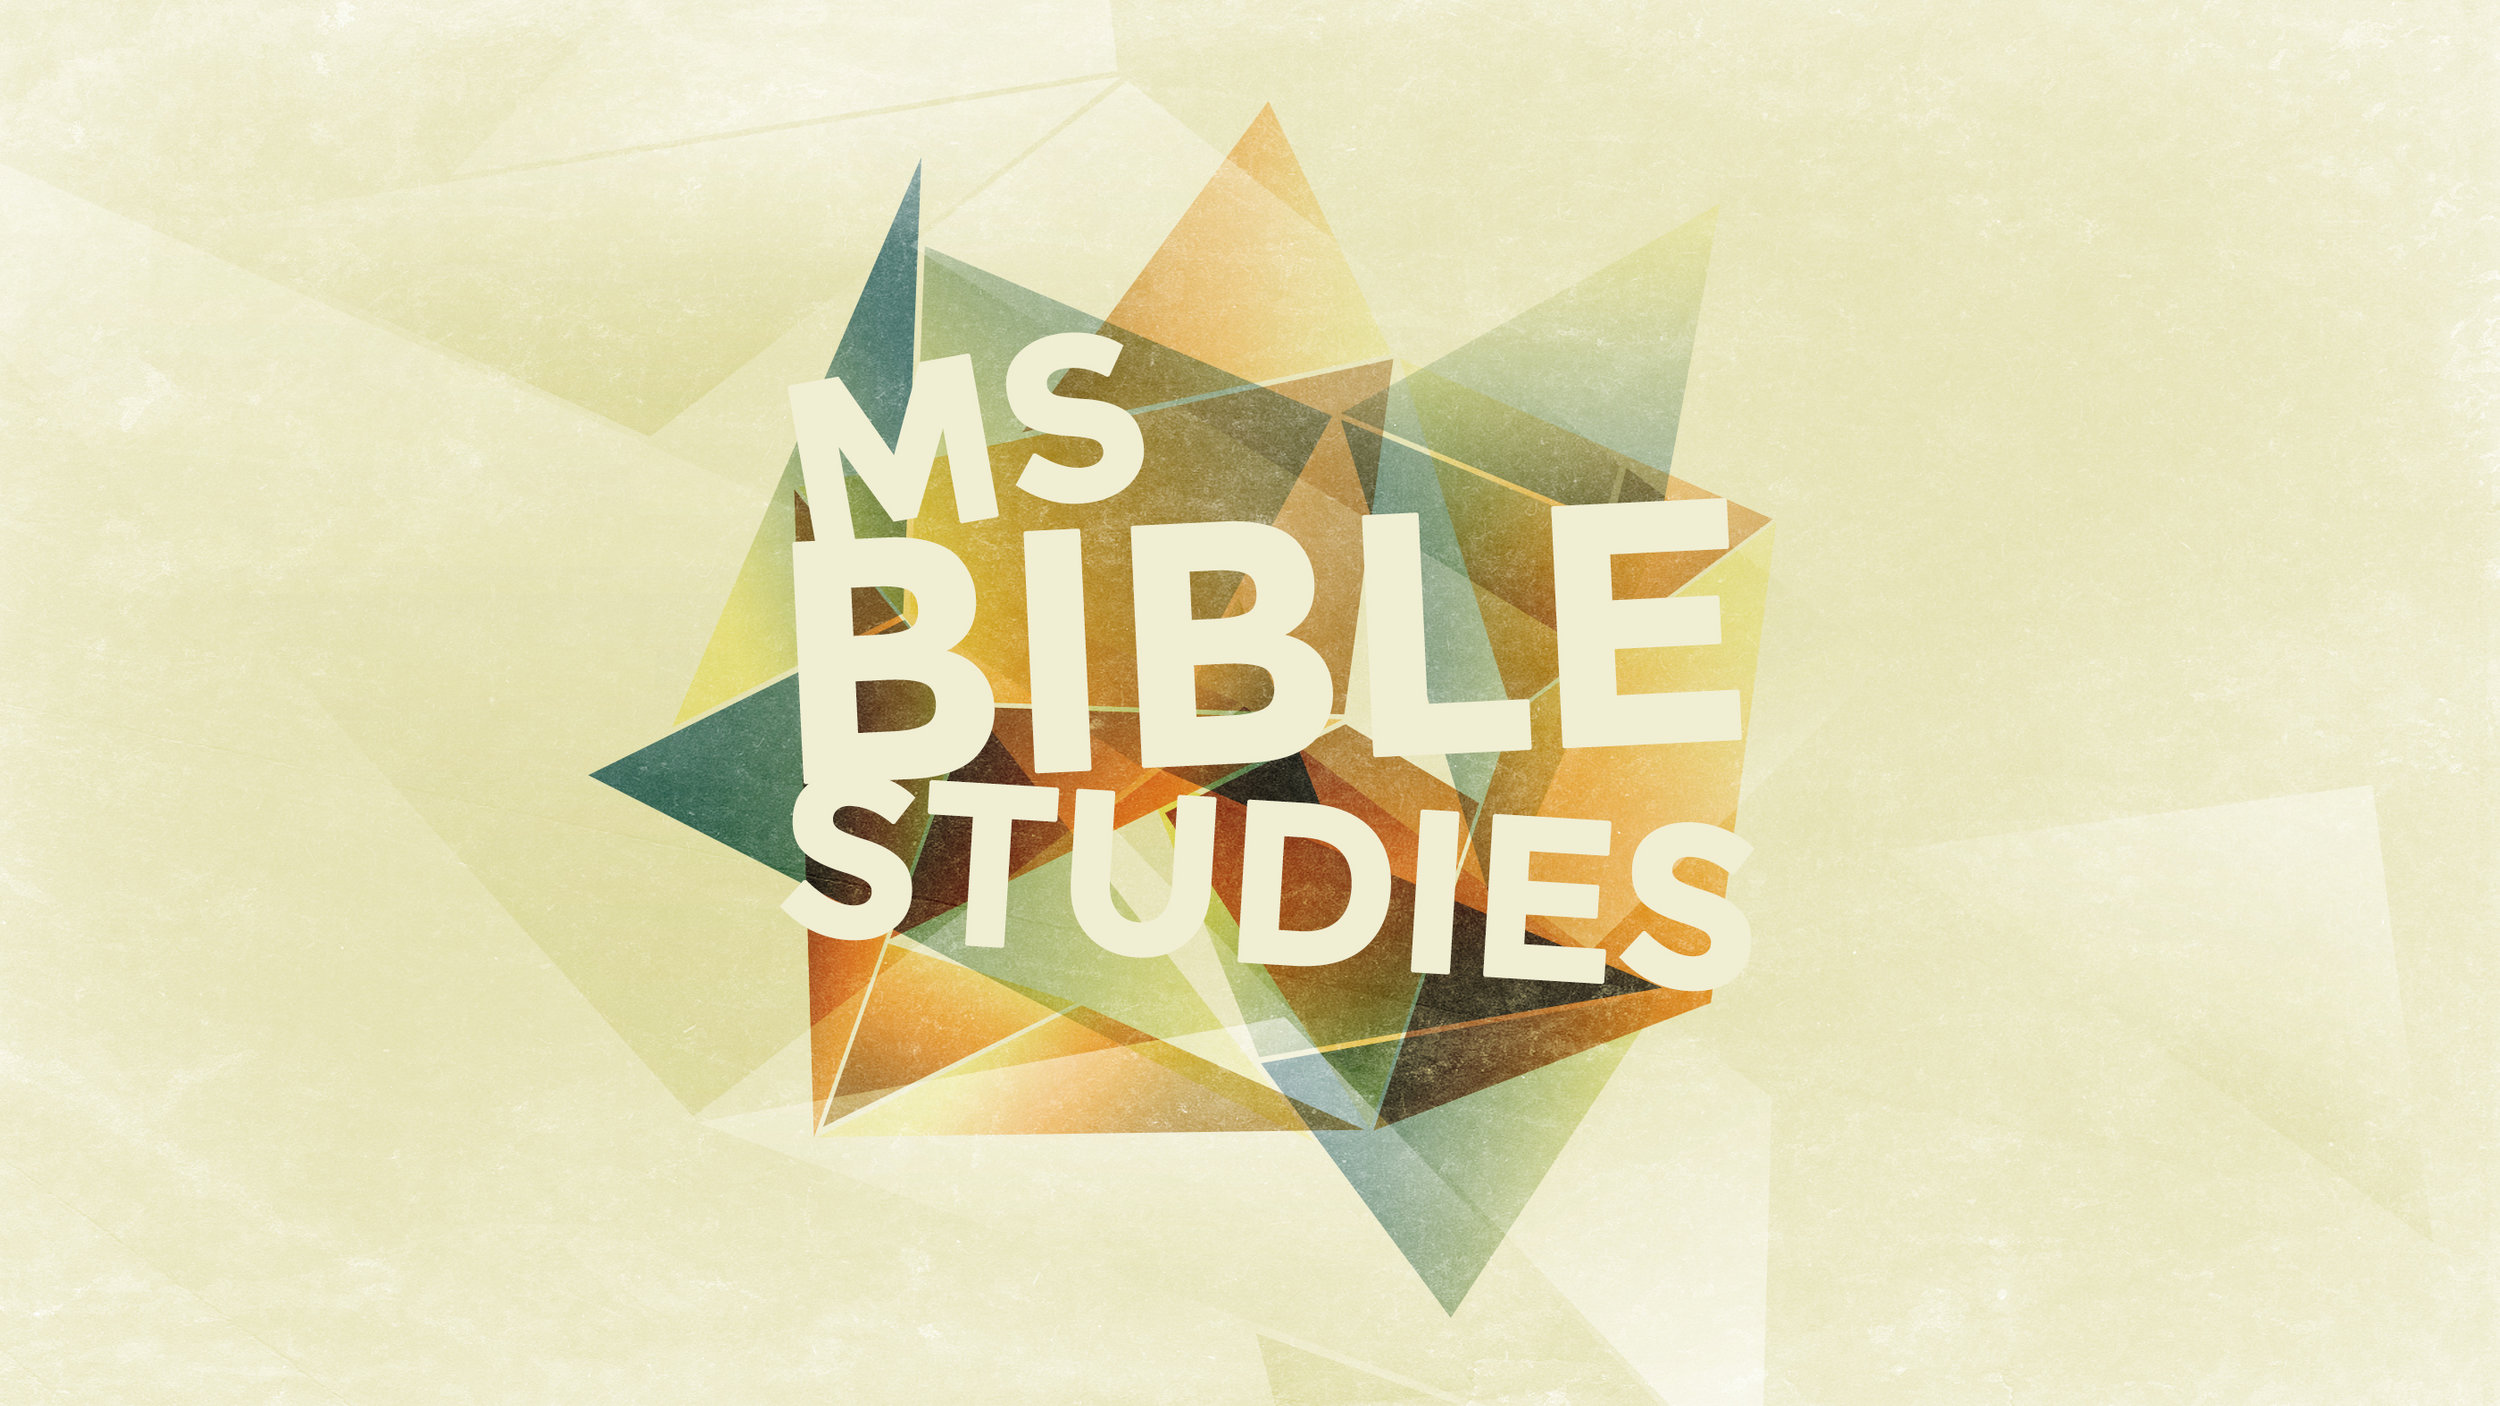 Middle school Bible studies will be starting back up on January 21st! Middle school guys' and girls' Bible studies will be at Church at the Mall in the student area from 6:00 pm to 7:30 pm. Guys will have Bible study in the Middle School Room, and Girls will meet in the High School Room. We will hangout, have fun, and most importantly open up and study the Bible. Important note:  Girls, please bring a composition notebook or similar with you, as well as any craft and art supplies you may have!We cannot wait to open up and study God's Word with our middle schoolers! Contact Pastor Chad Daugherty at  chad.daugherty@churchatthemall.com  or call/text at (865) 748-6298 with any questions.